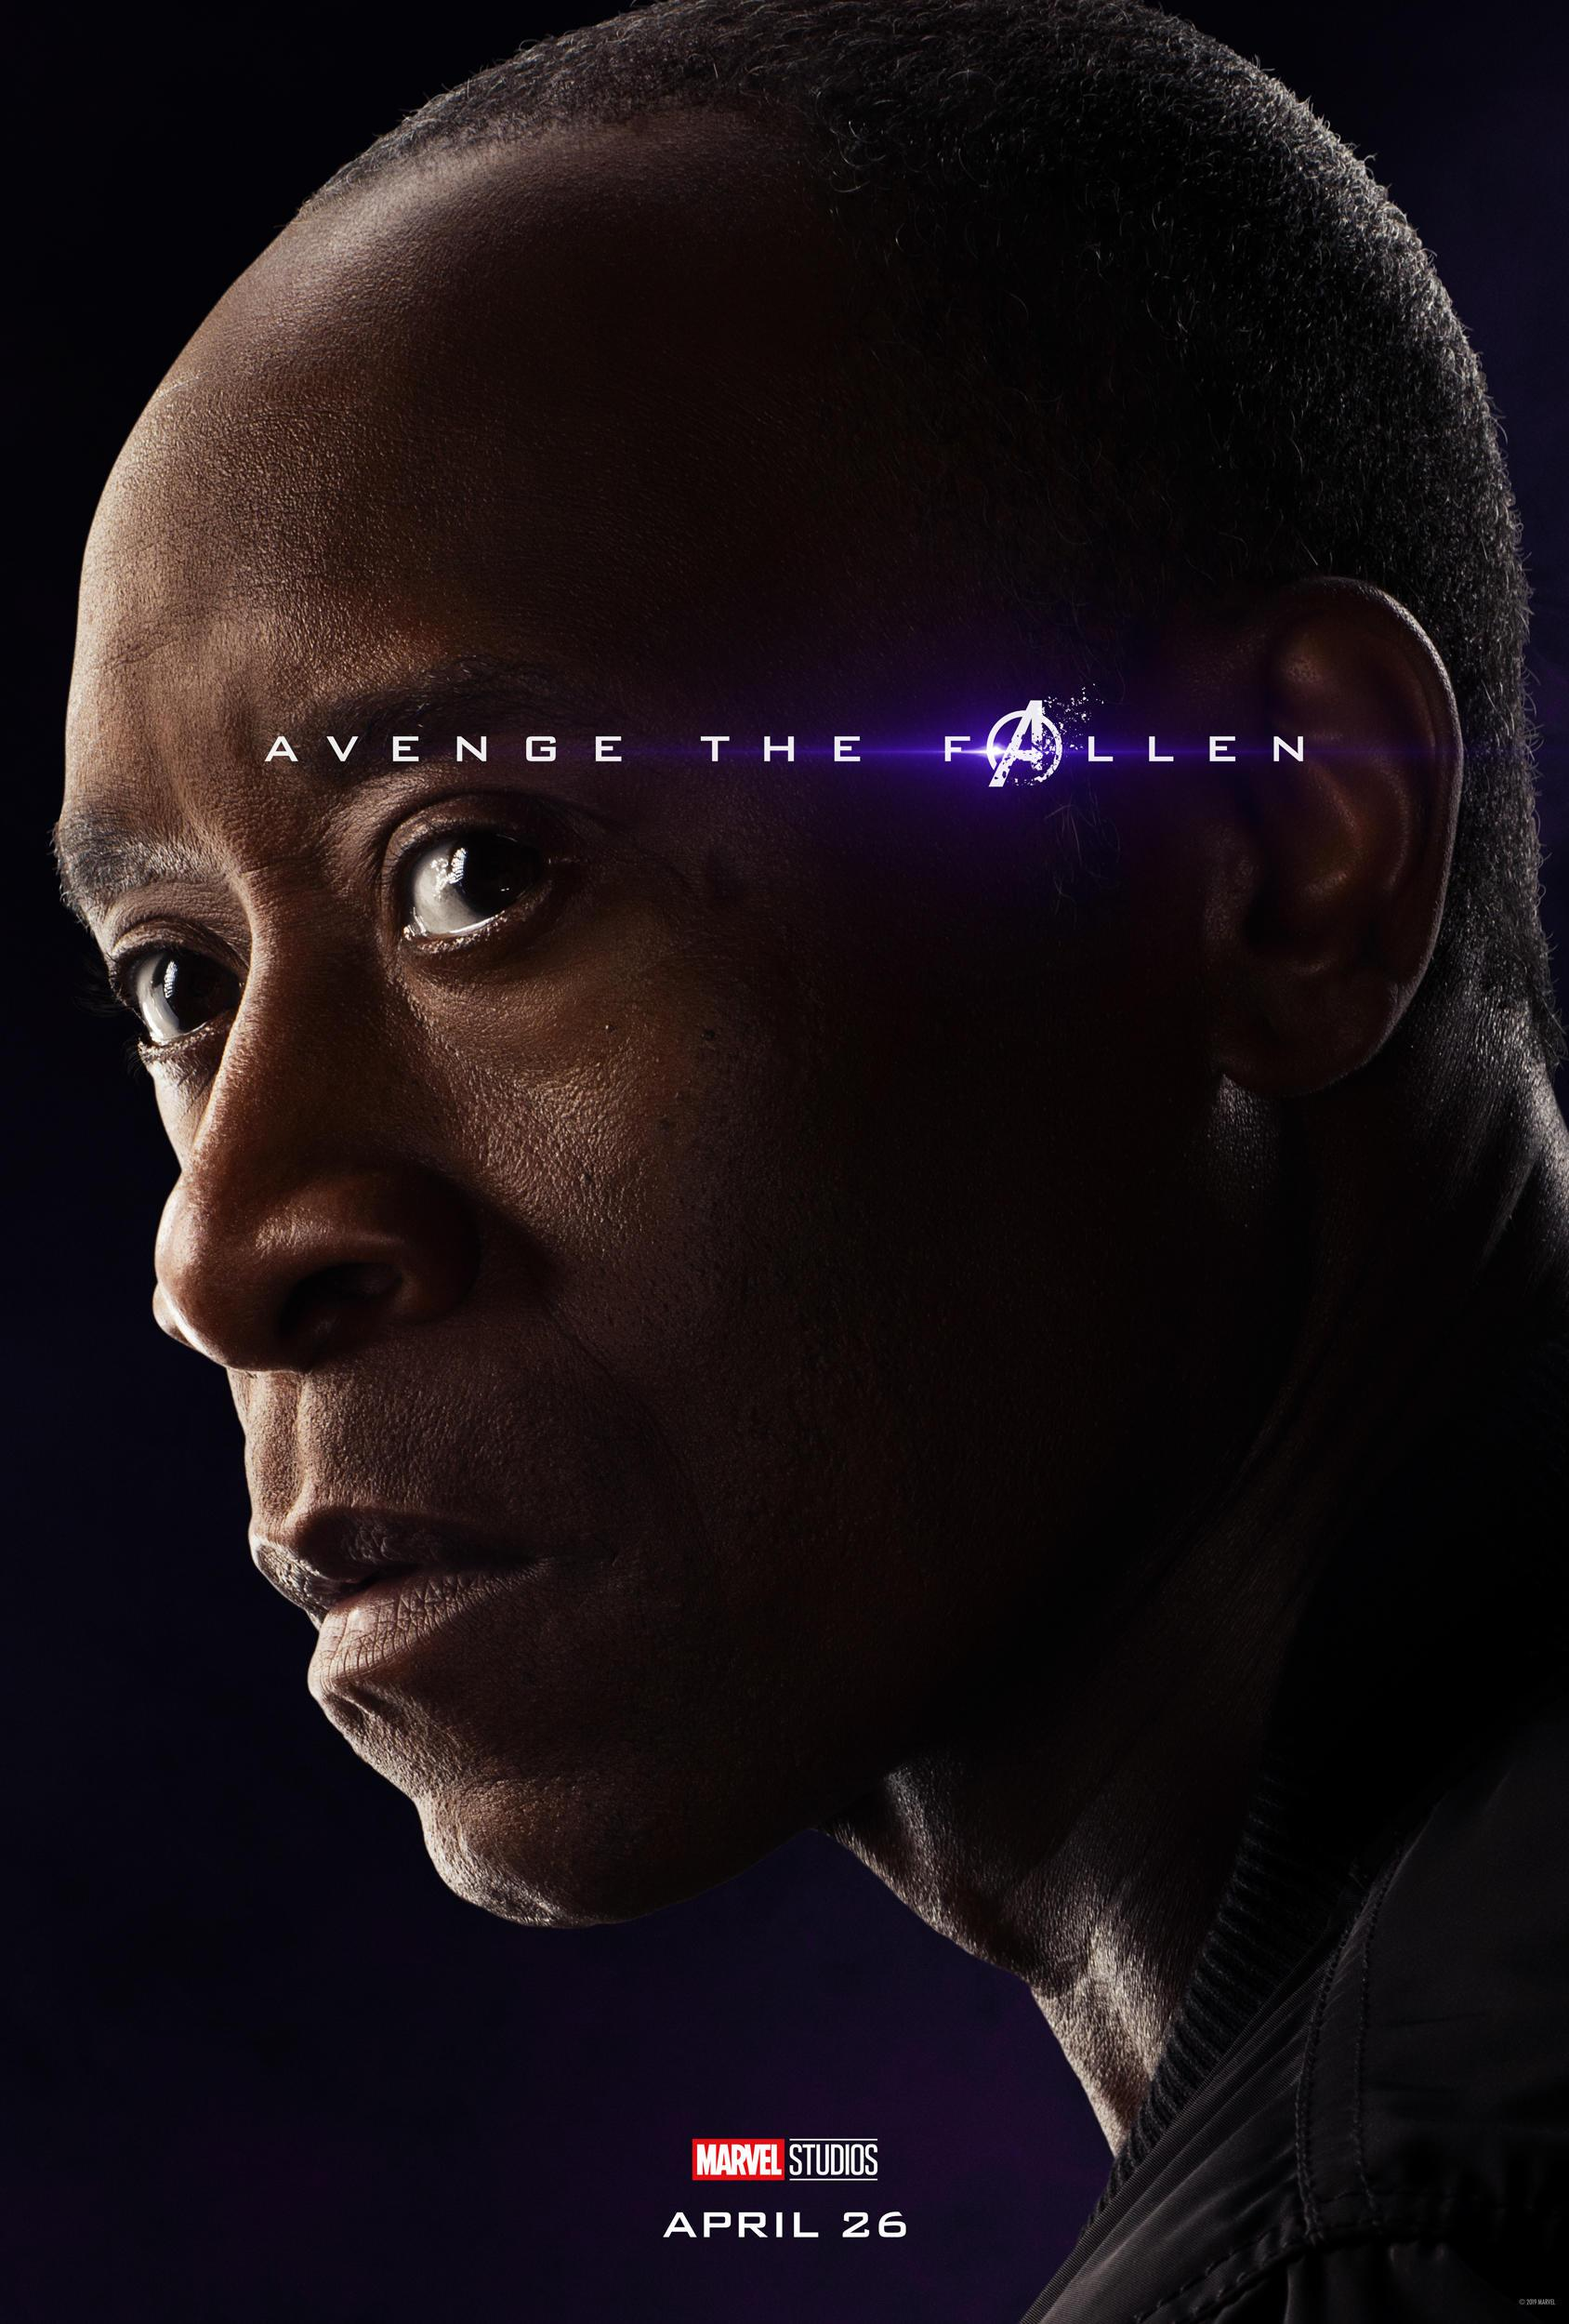 Avengers Endgame Tickets Being Resold For Almost 10 000 On Ebay